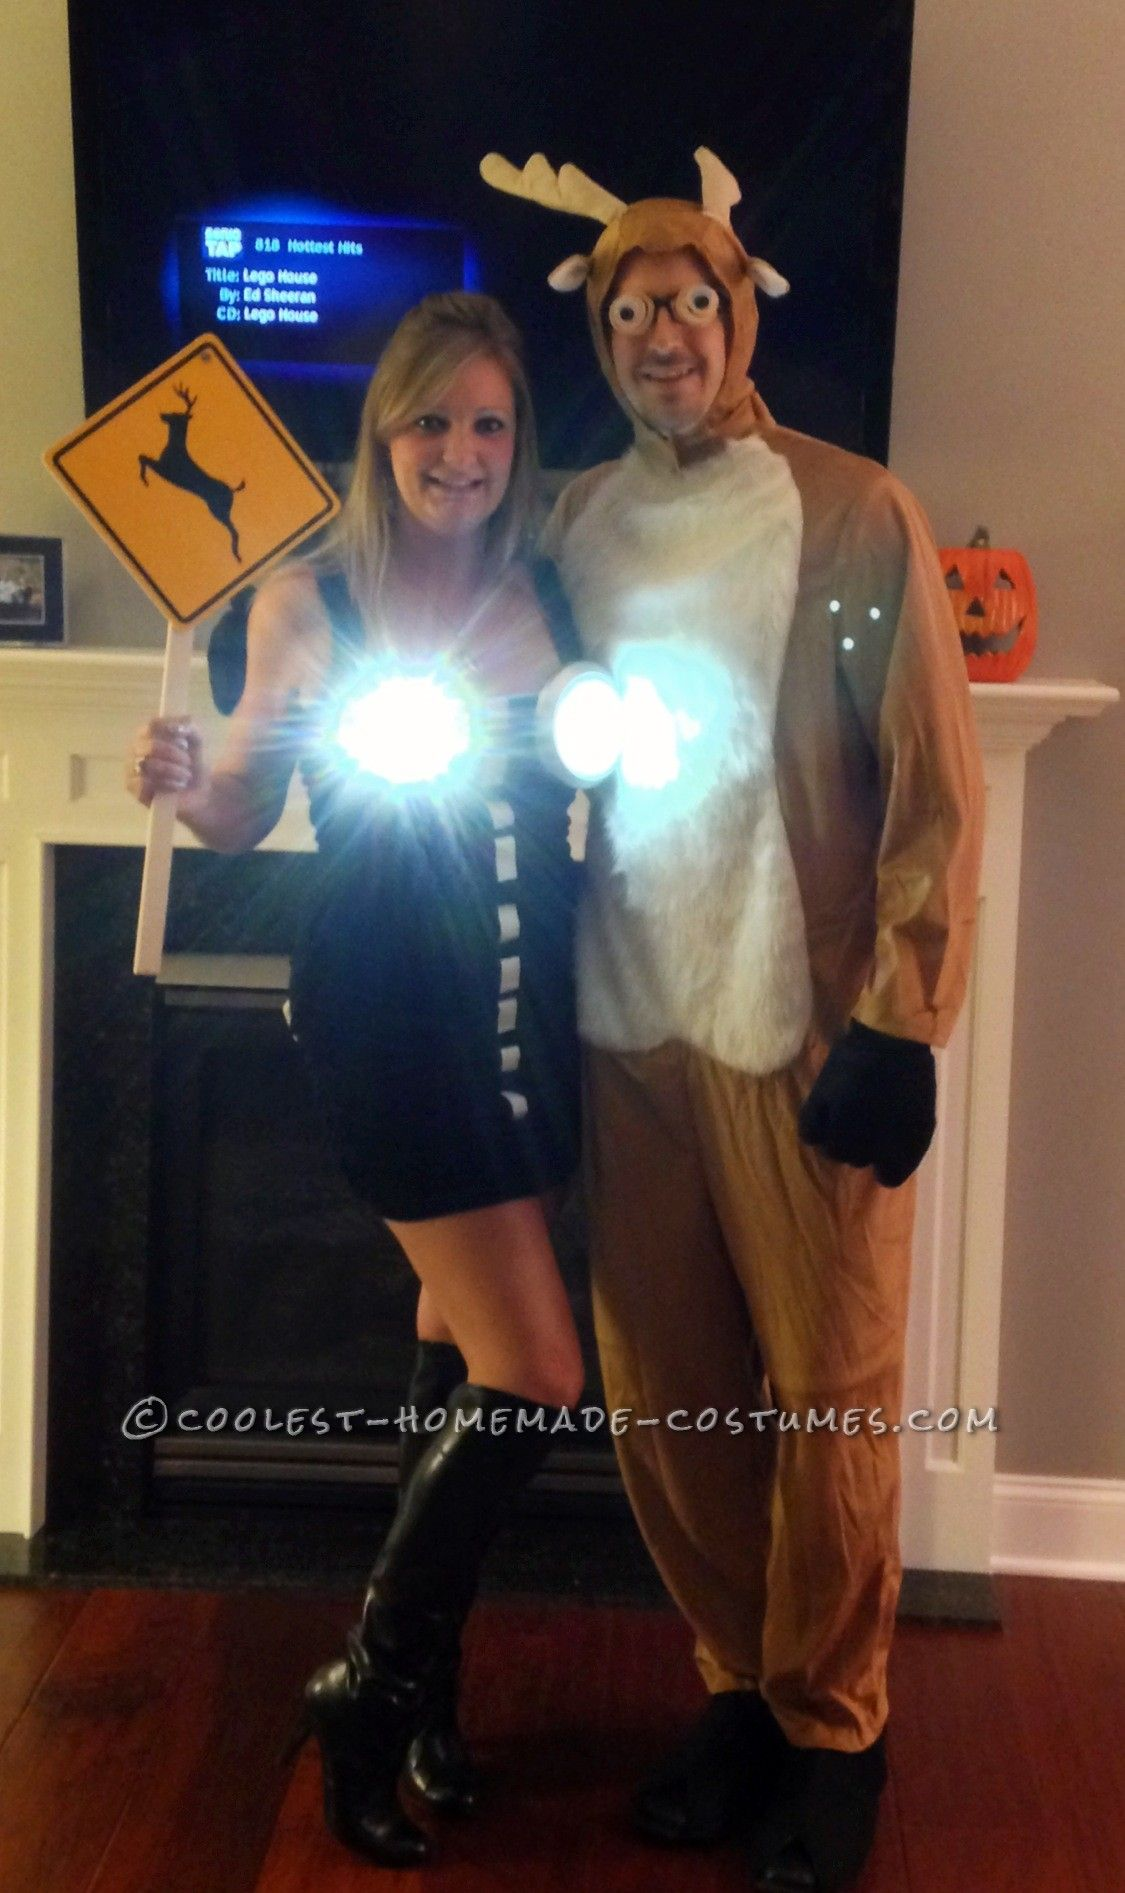 Cool Homemade Couple Costume Idea Deer in Headlights  sc 1 st  Pinterest & Cool Homemade Couple Costume Idea: Deer in Headlights | Homemade ...